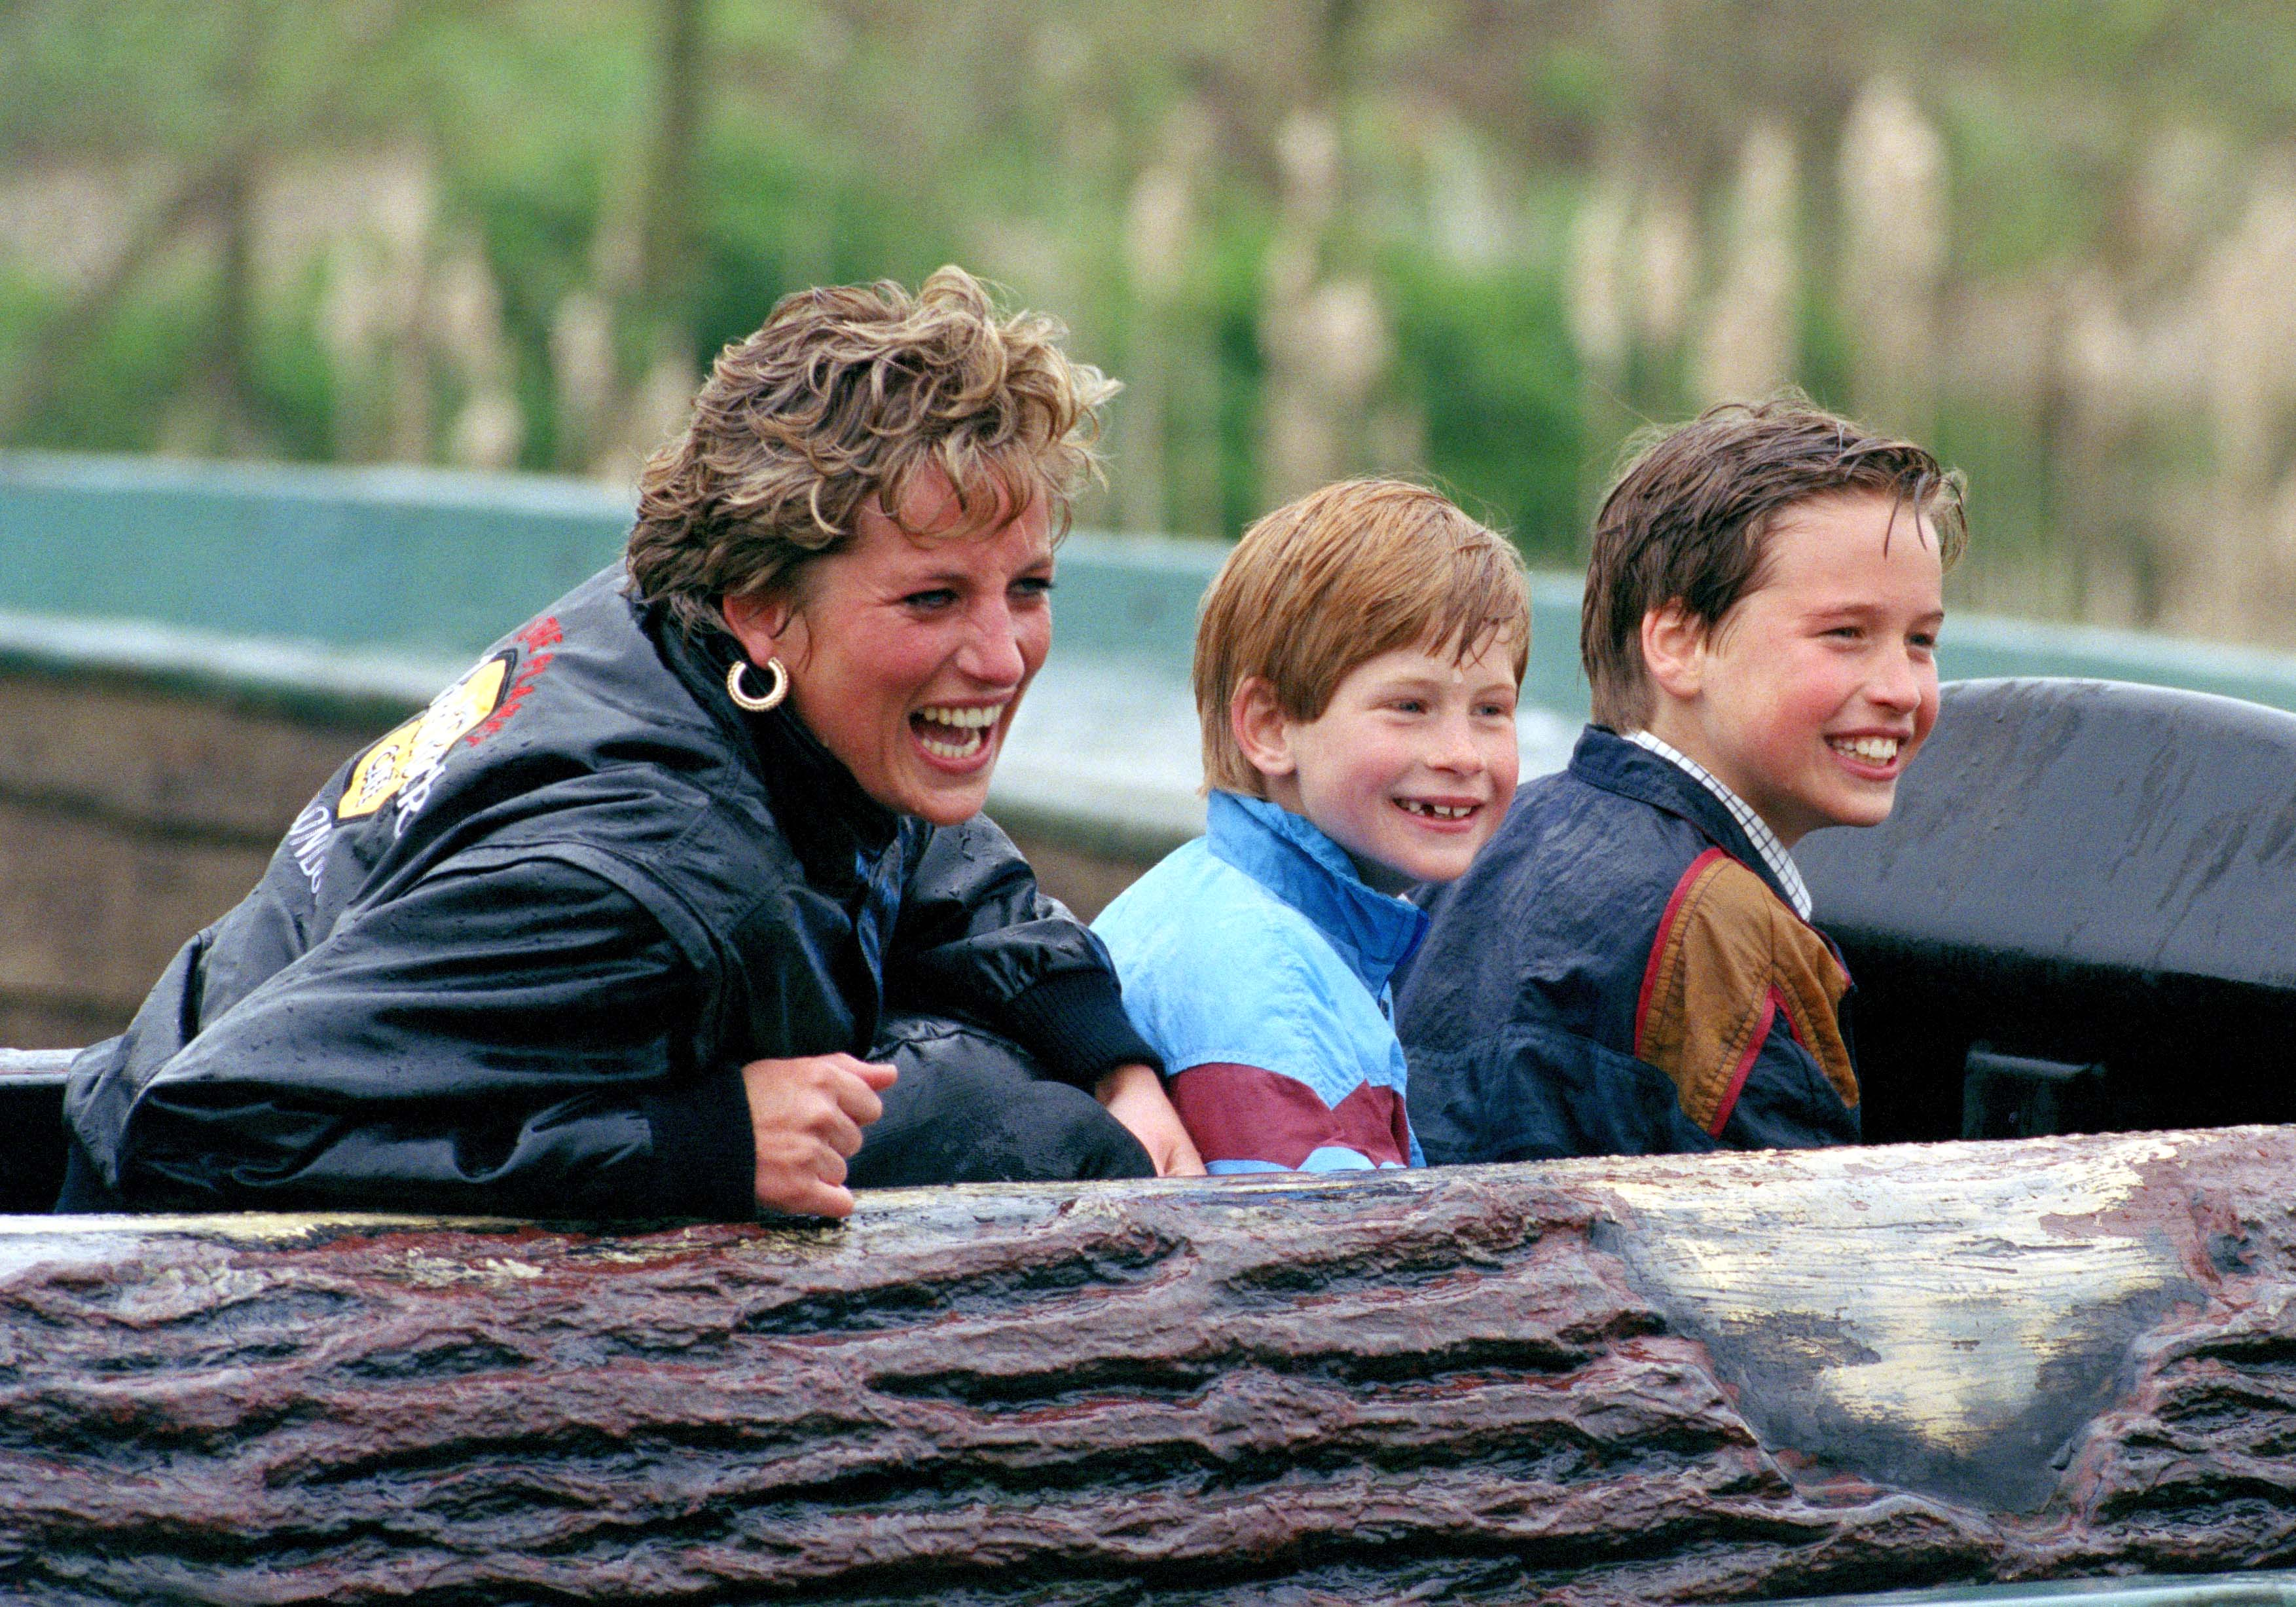 Princess Diana and her sons Prince William and Prince Harry having fun at Thorpe Amusement Park, April, 1993. | Photo: Getty Images.